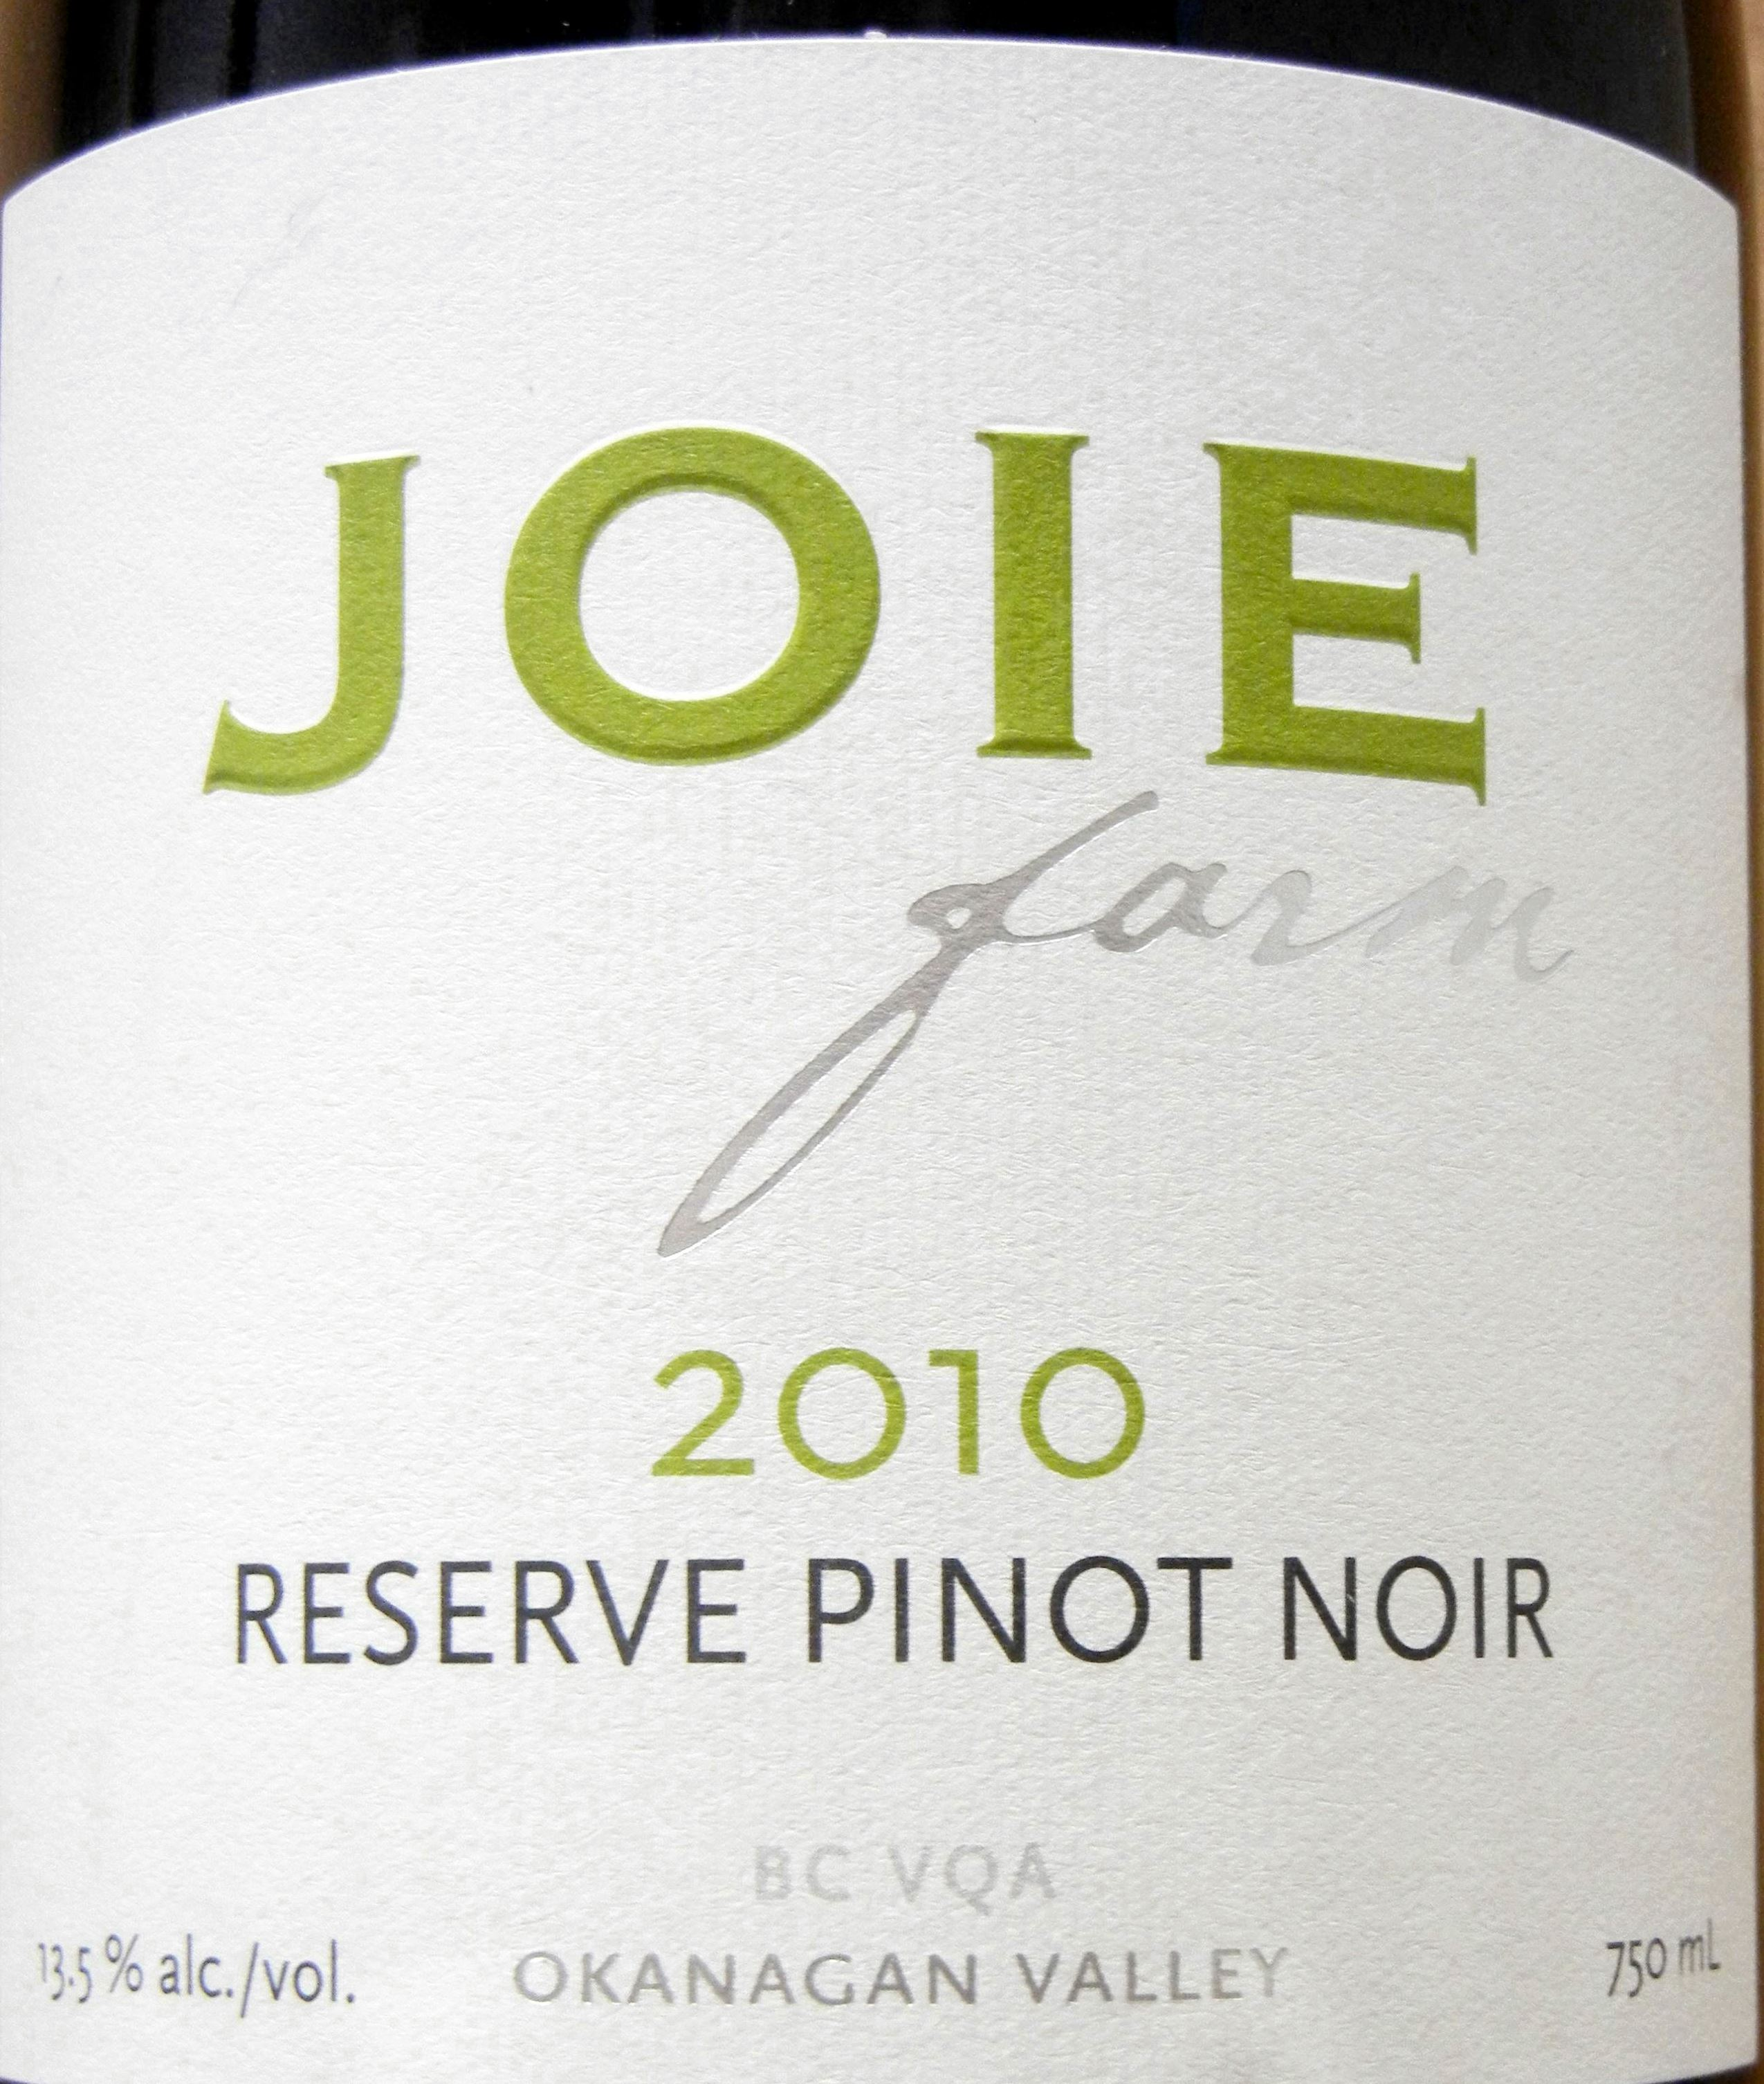 Joie Reserve Pinot Noir 2010 Label - BC Pinot Noir Tasting Review 10